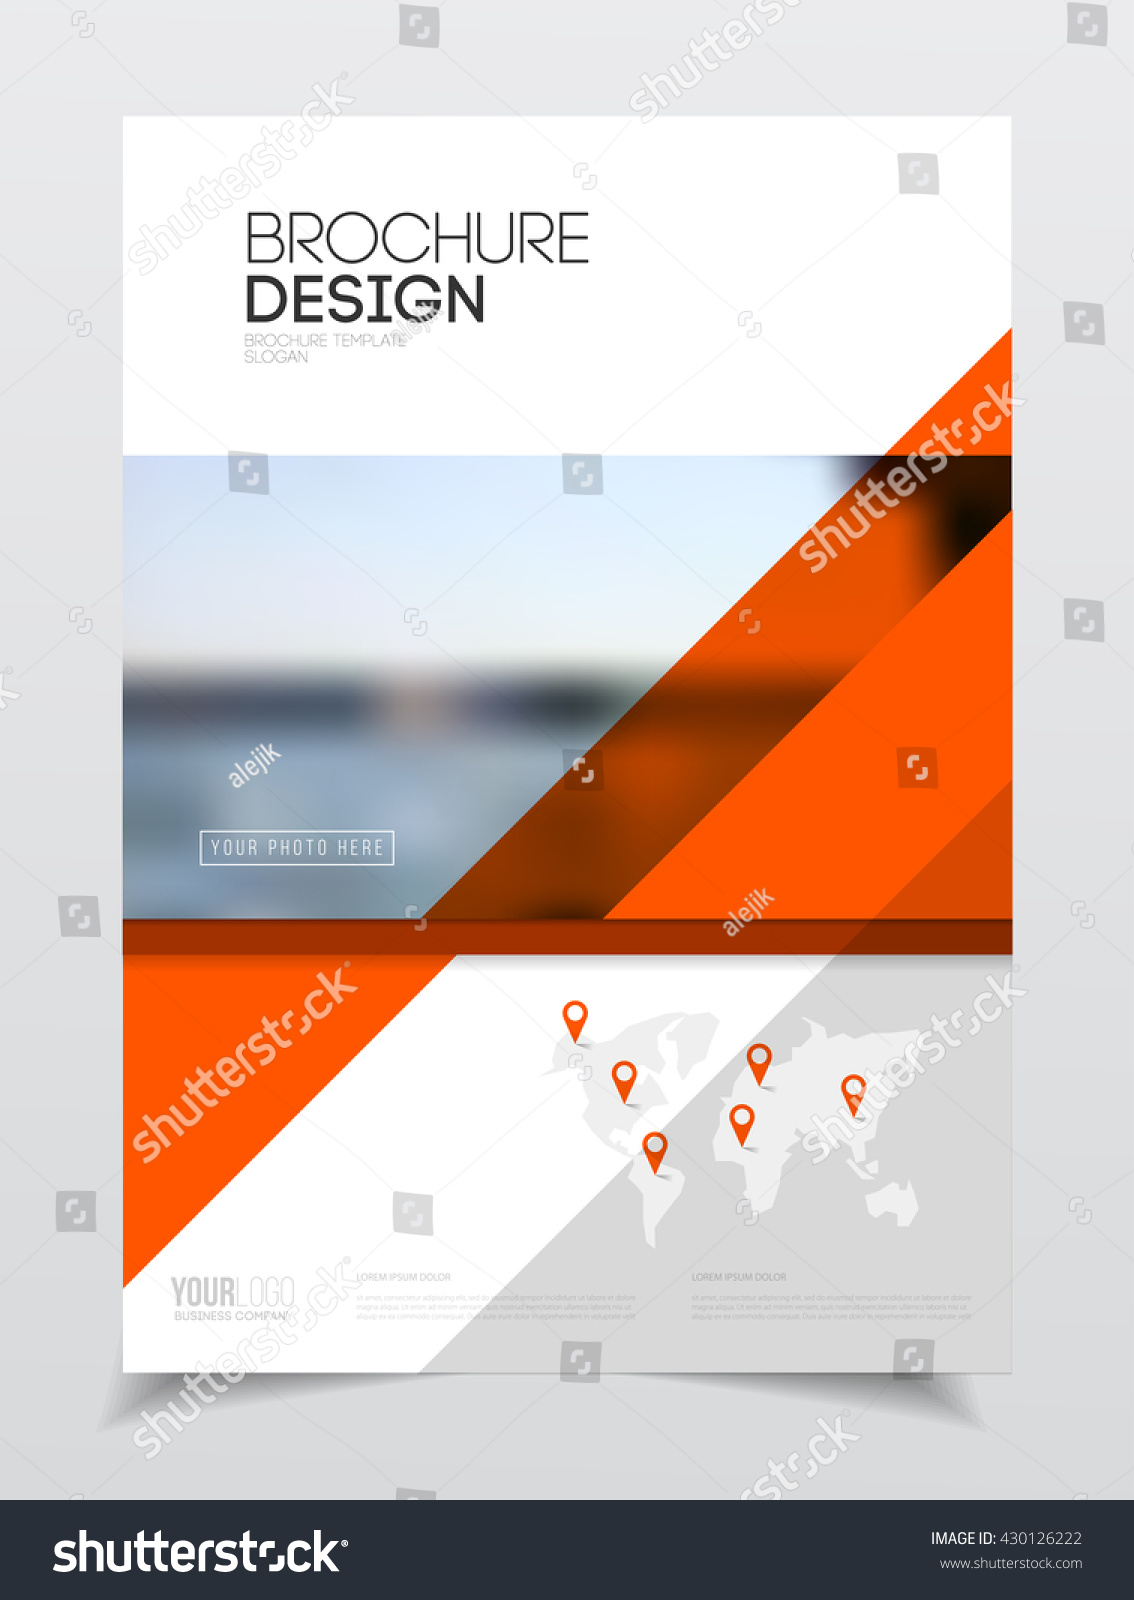 royalty free catalogue cover design annual report 430126222 stock